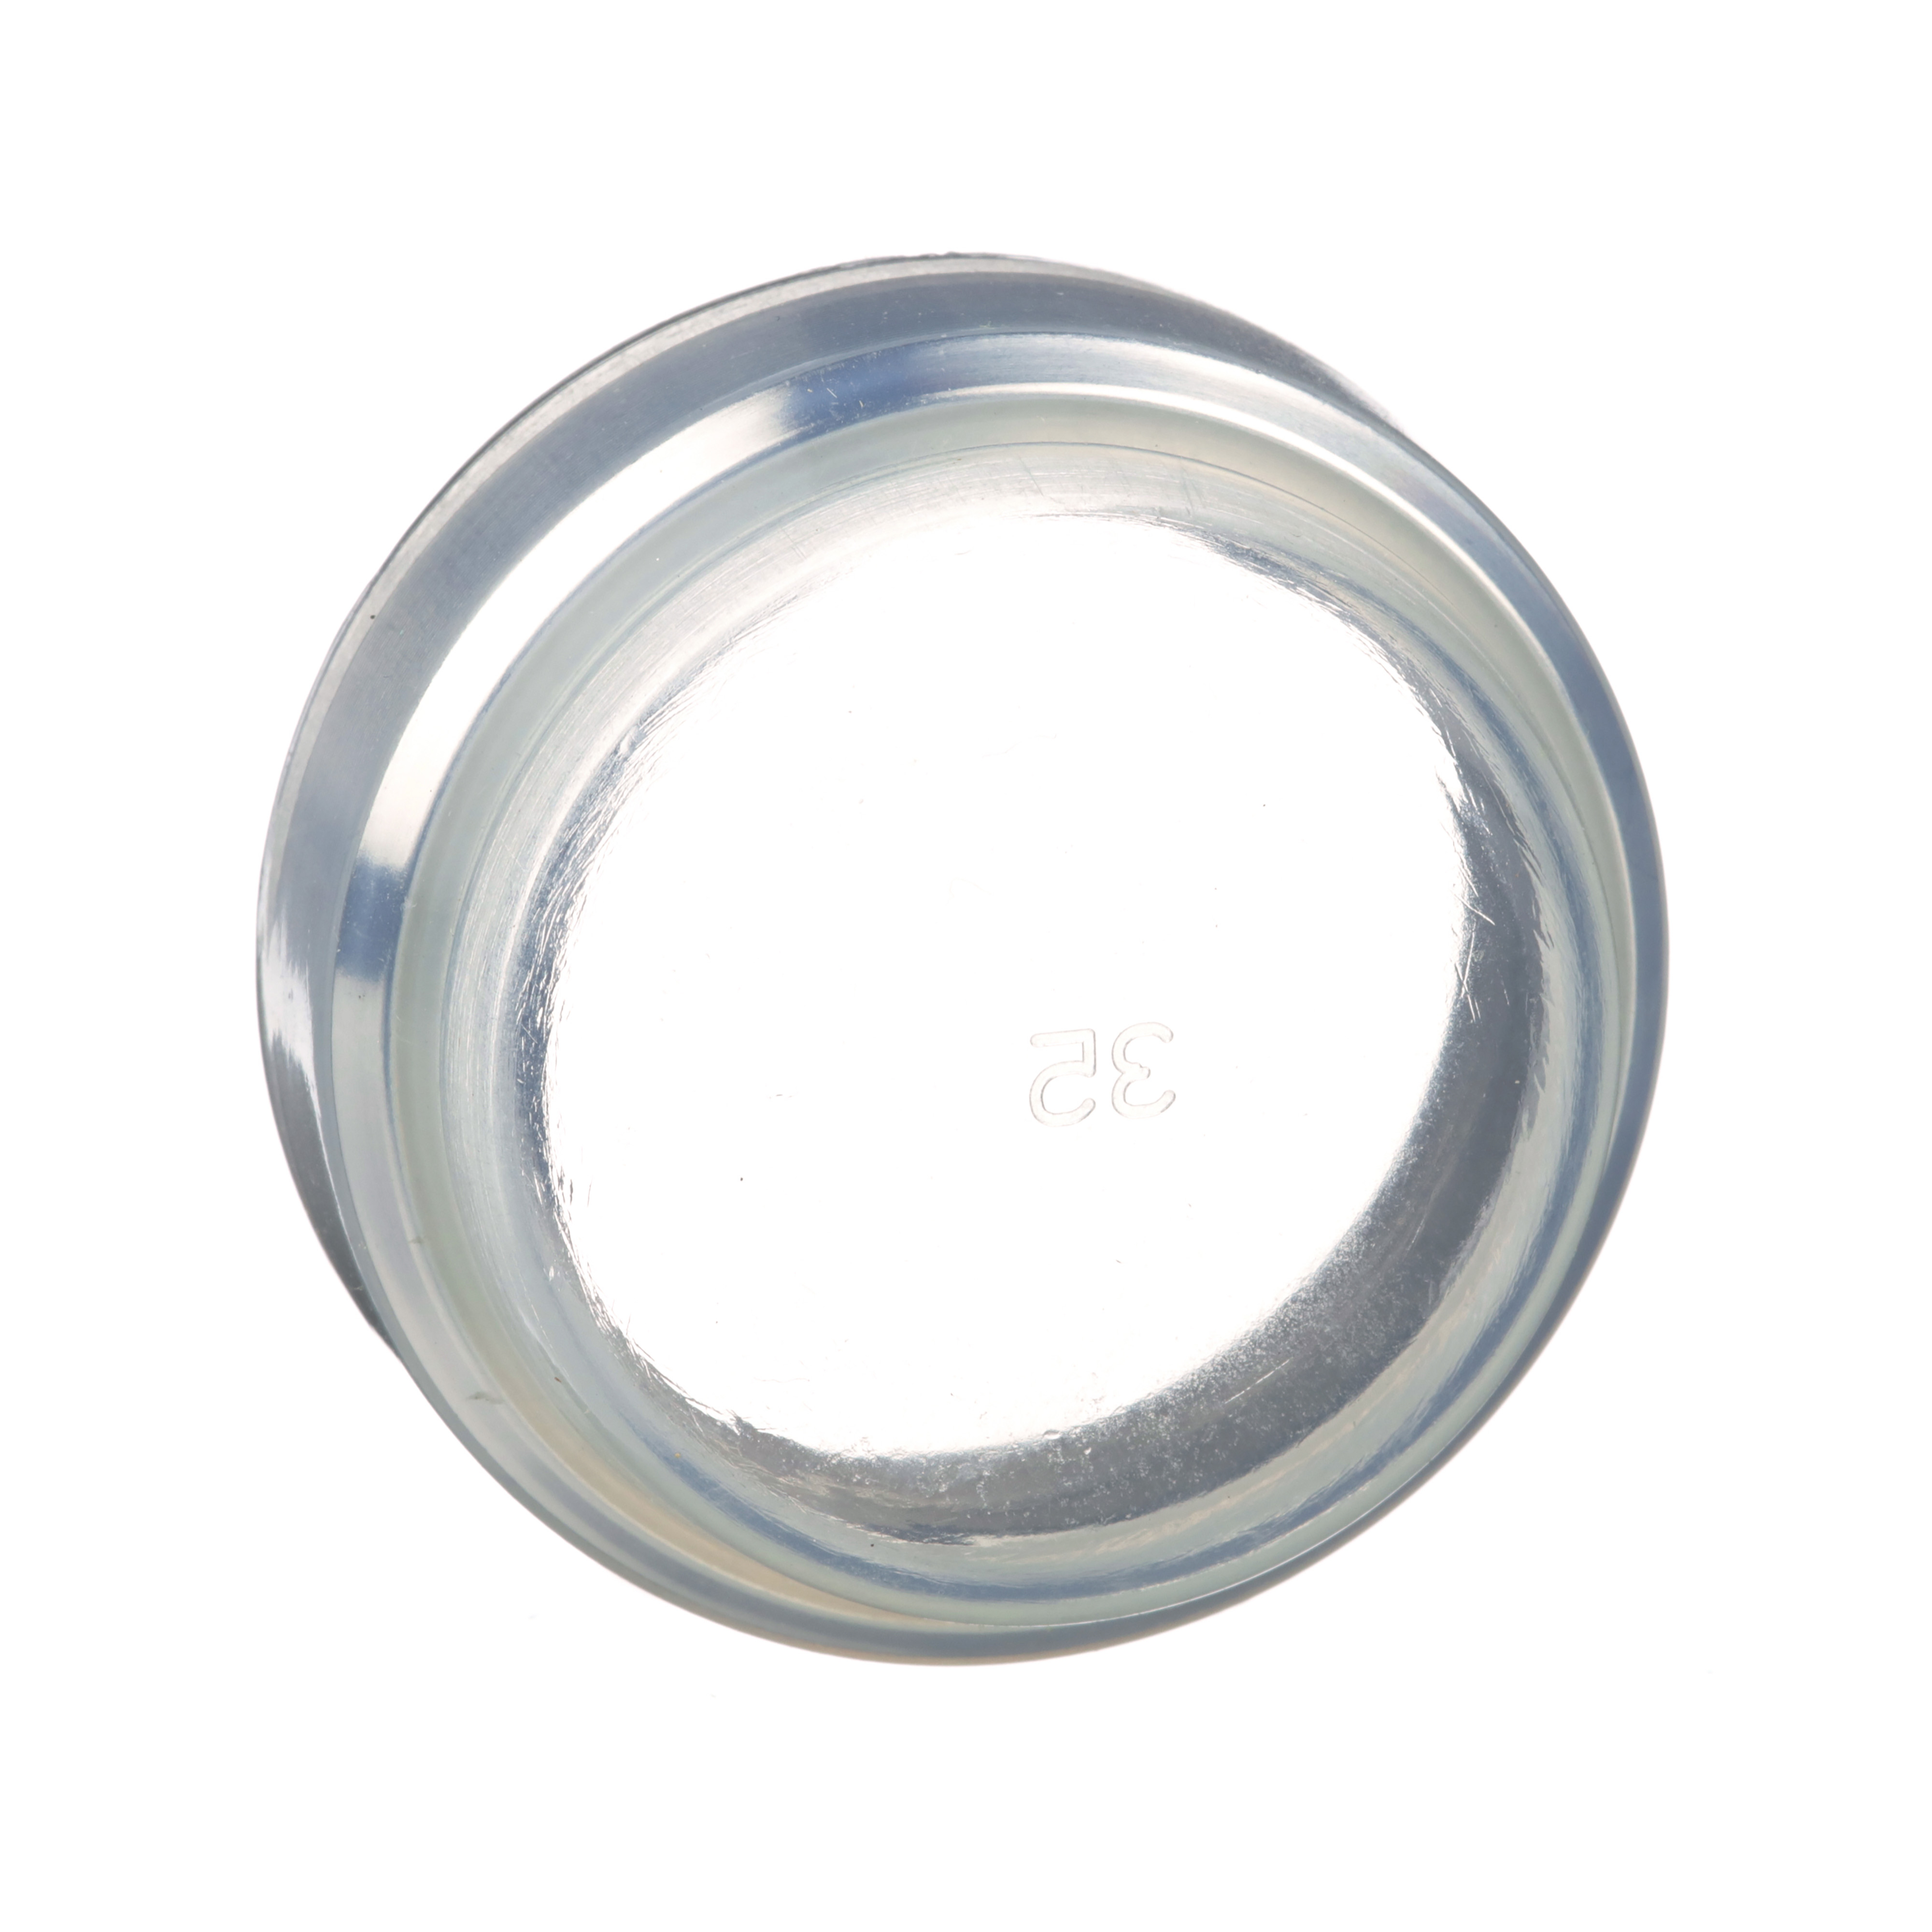 SQUARE D 30mm Push Button, Types K or SK, clear protective boot, for nonilluminated push buttons